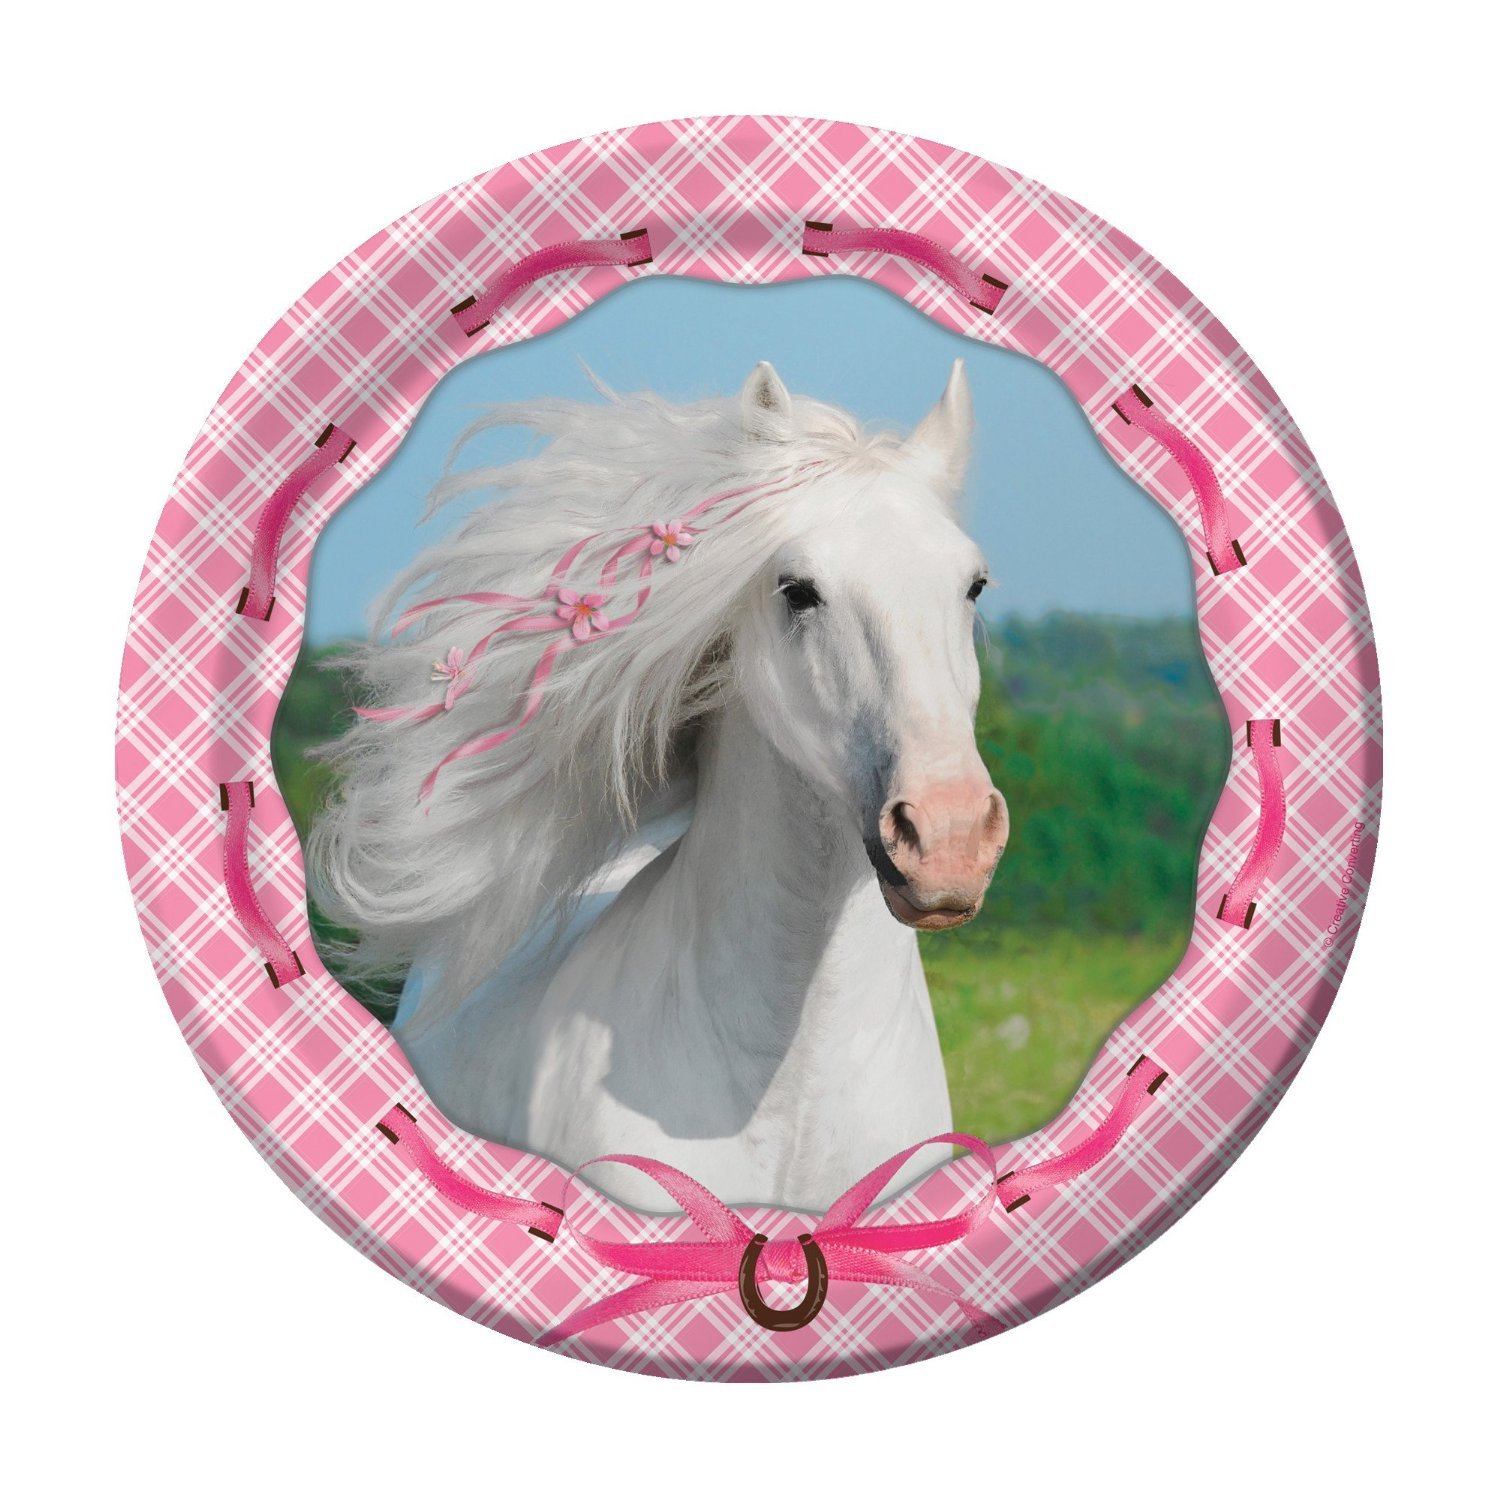 and Table Cover Dessert Plates Beverage Napkins Cups Heart My Horse Pink Birthday Party Supplies Pack for 16 Guests: Stickers